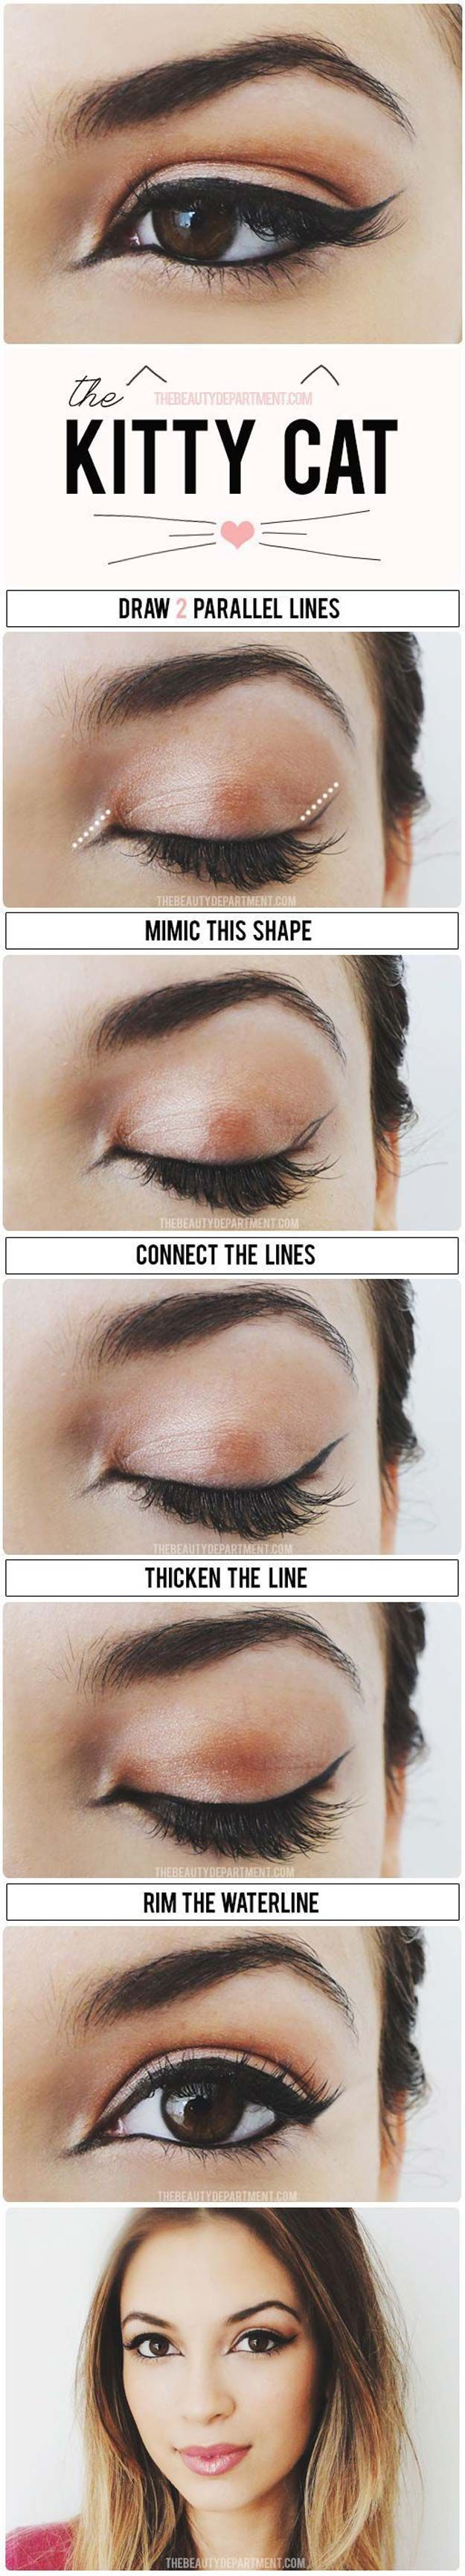 Winged Eyeliner Tutorials - Irresistible Cat Eyeliner Tutorials Pretty Girls- Easy Step By Step Tutorials For Beginners and Hacks Using Tape and a Spoon, Liquid Liner, Thing Pencil Tricks and Awesome Guides for Hooded Eyes - Short Video Tutorial for Perfect Simple Dramatic Looks - thegoddess.com/winged-eyeliner-tutorials